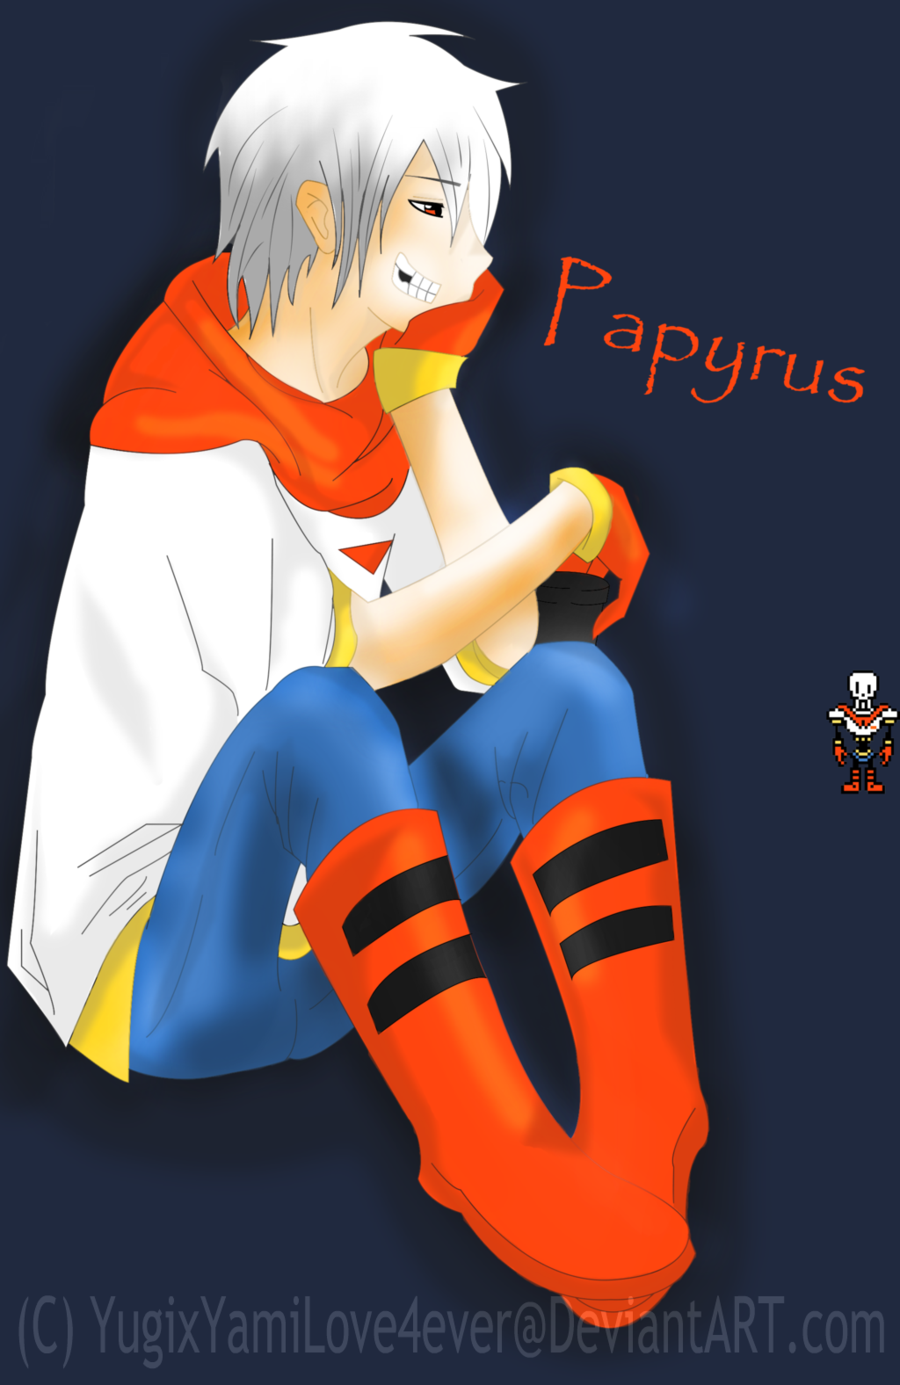 Next qu-  Papyrus: Hello human! What are you doing? Me:Papy! What are you doing here?! Papyrus: I, THE GREAT PAPYRUS, wants to know what are you doing. Me: Im hosting a show about which golden brother are you. Papyrus: WOWIE! Can I ask a question?  Me: Ask away... Papyrus: Do you like the, THE GREAT PAPYRUS!!!